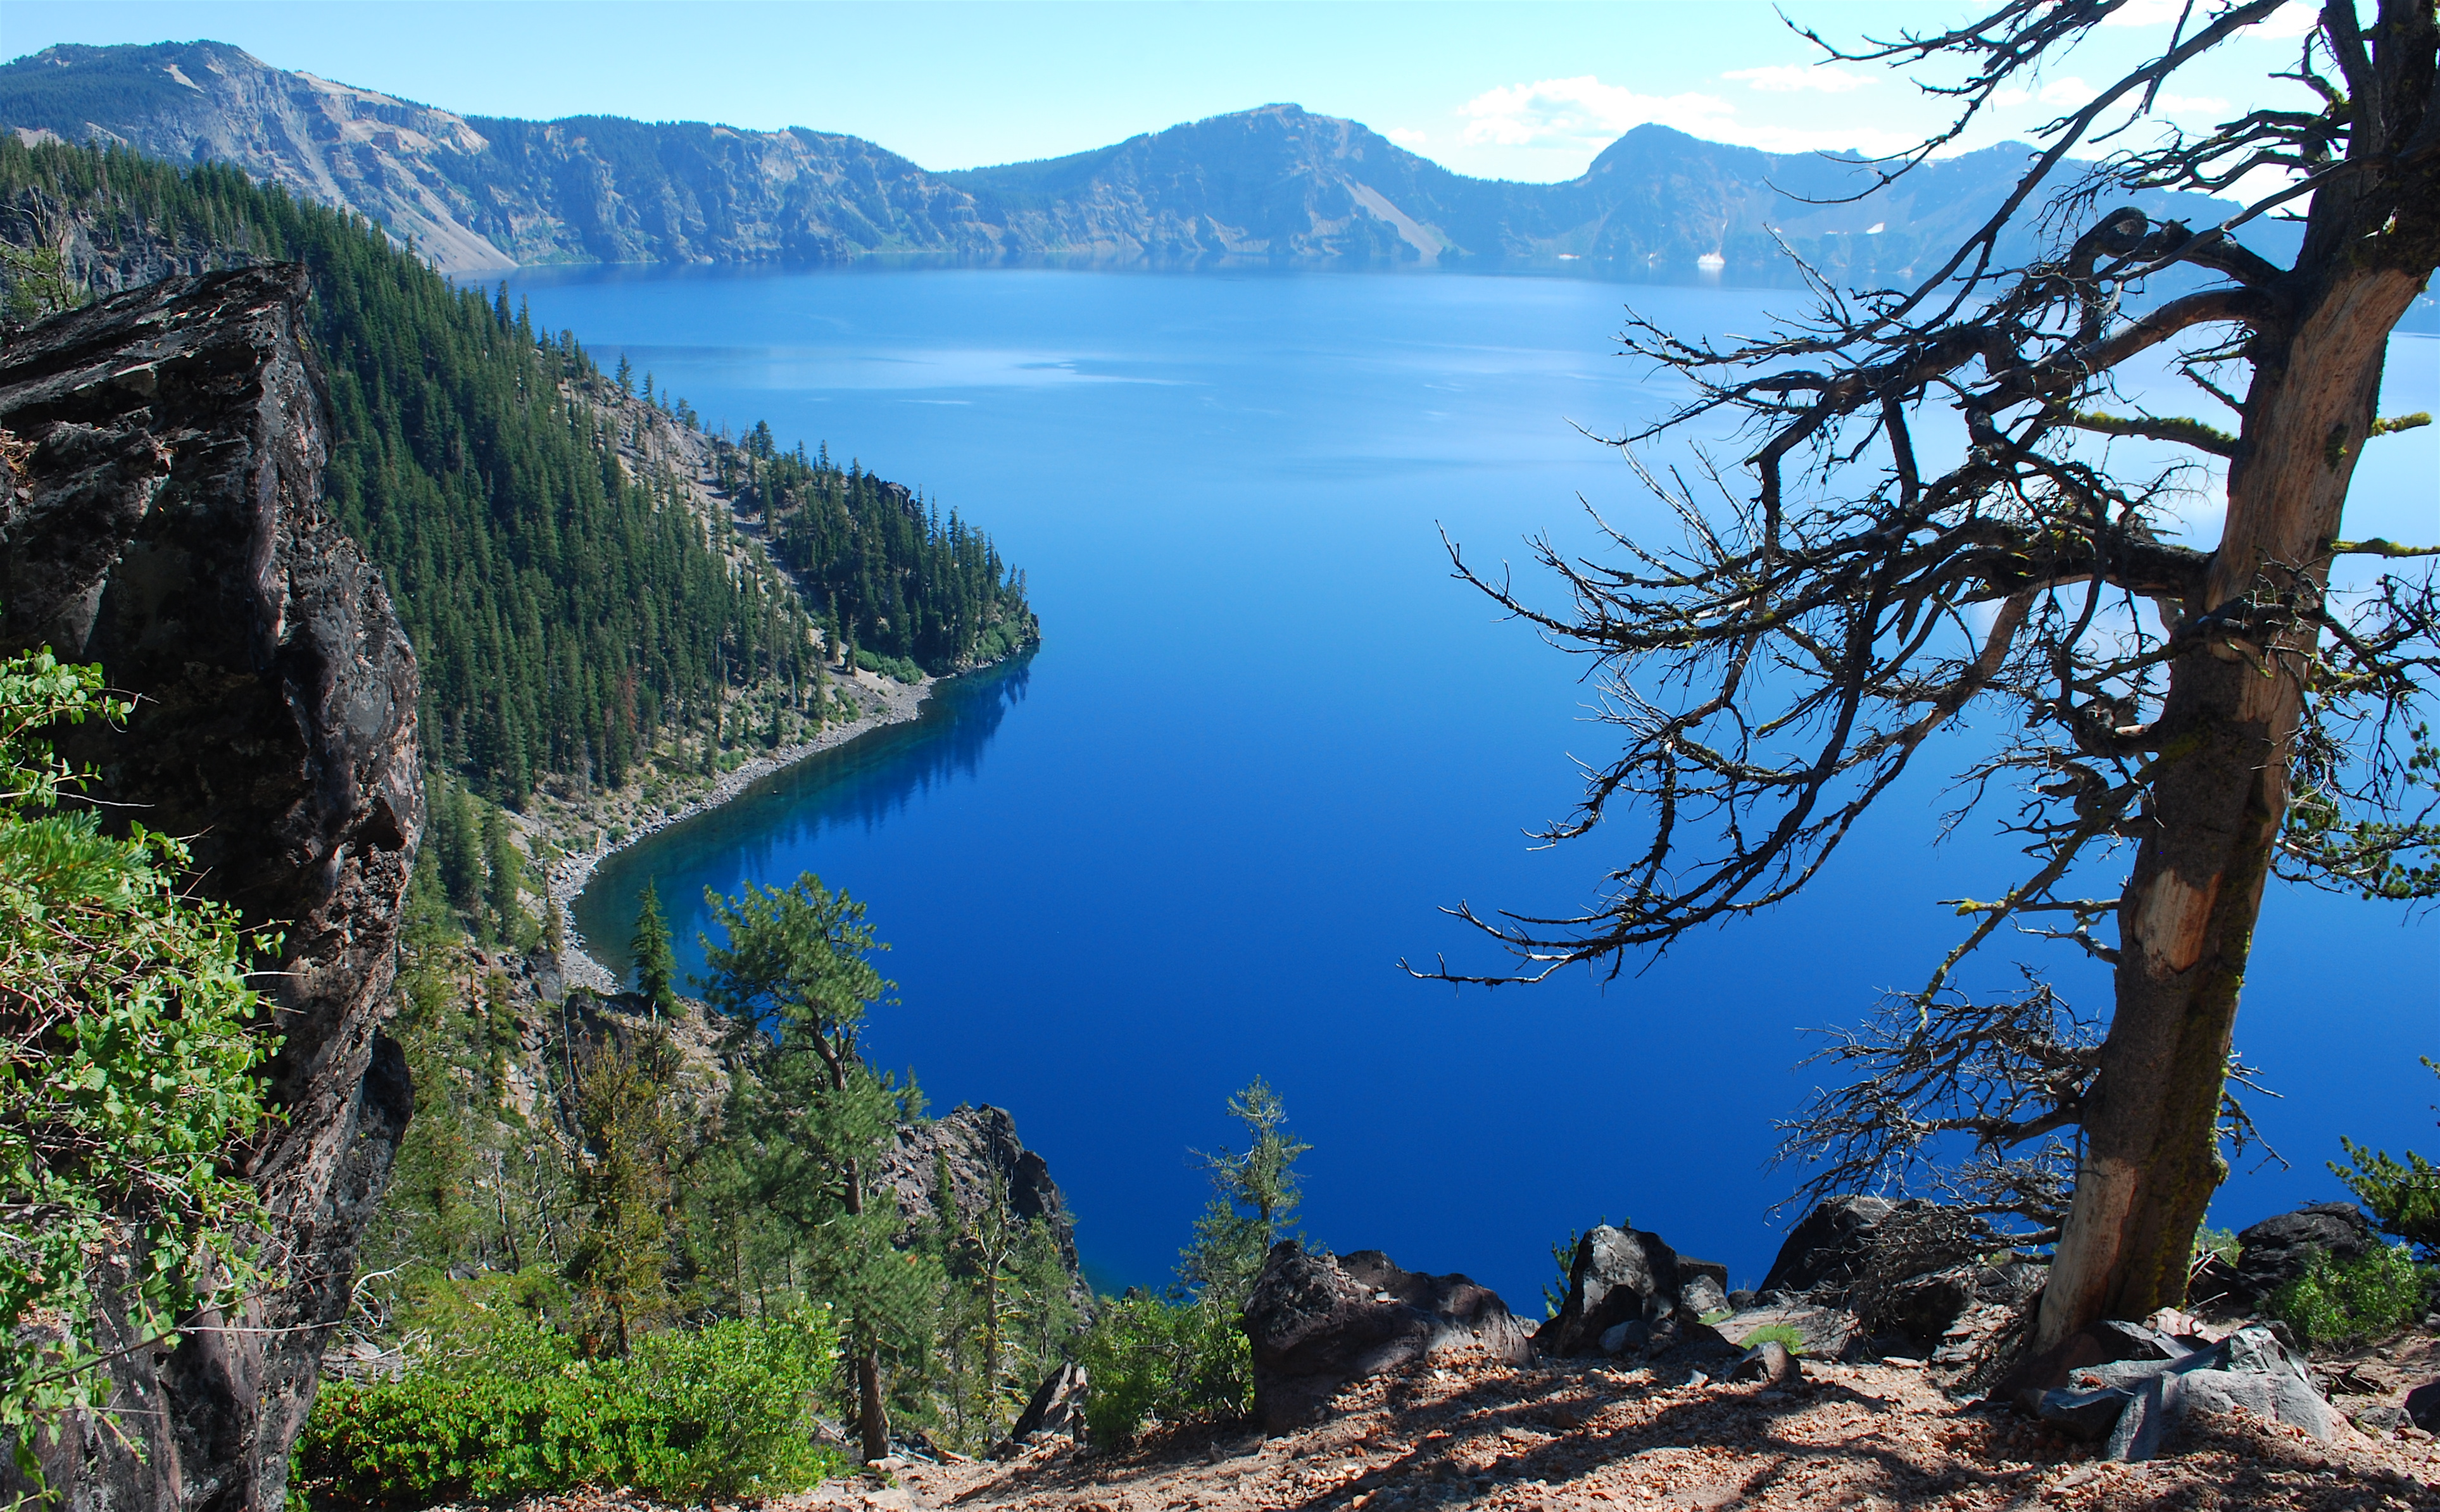 Blue Color Of Crater Lake